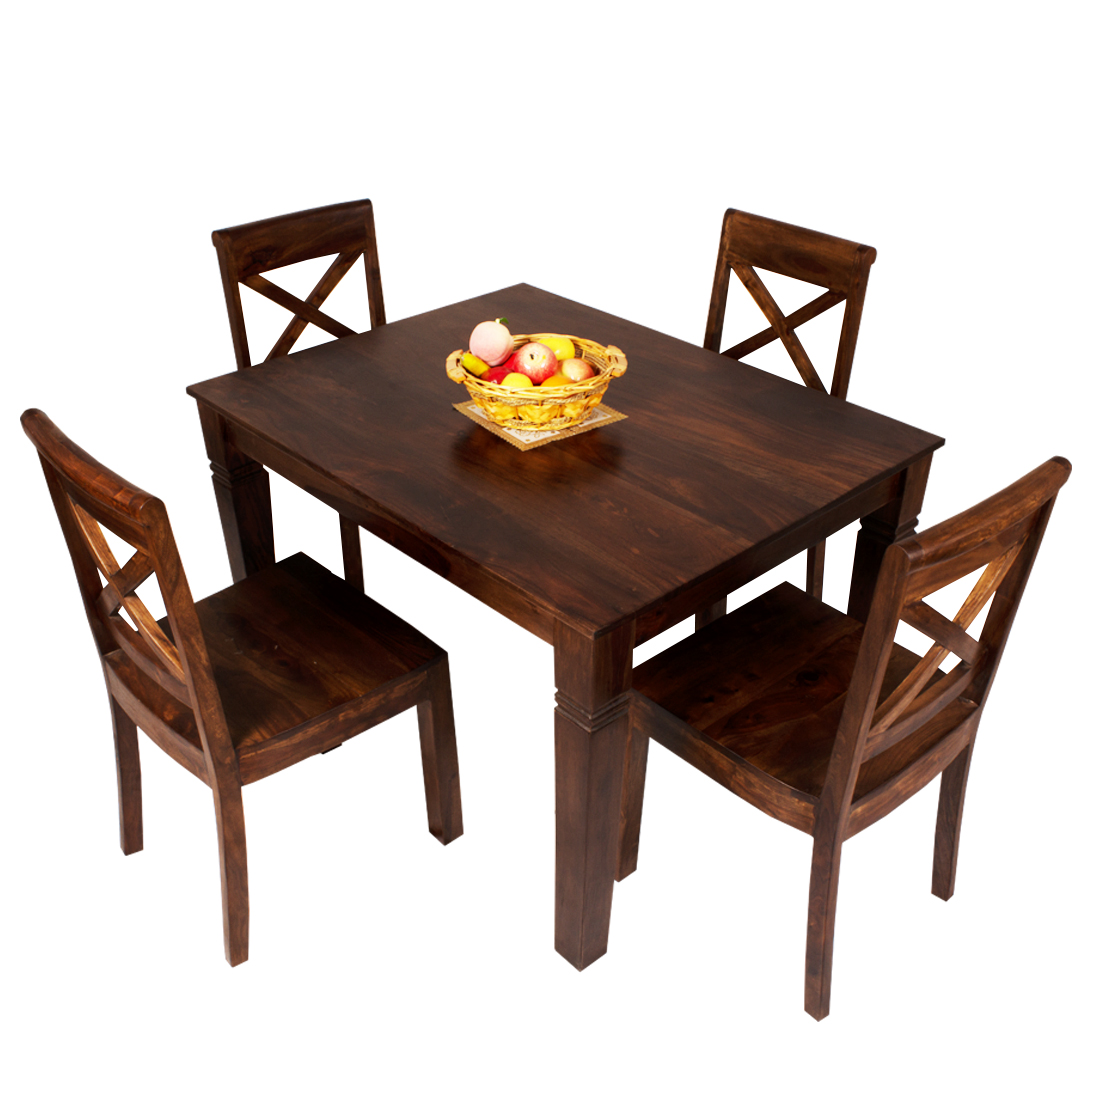 Bharat lifestyle richie wooden 4 seater dining set 1 4 online price in india buybharat lifestyle